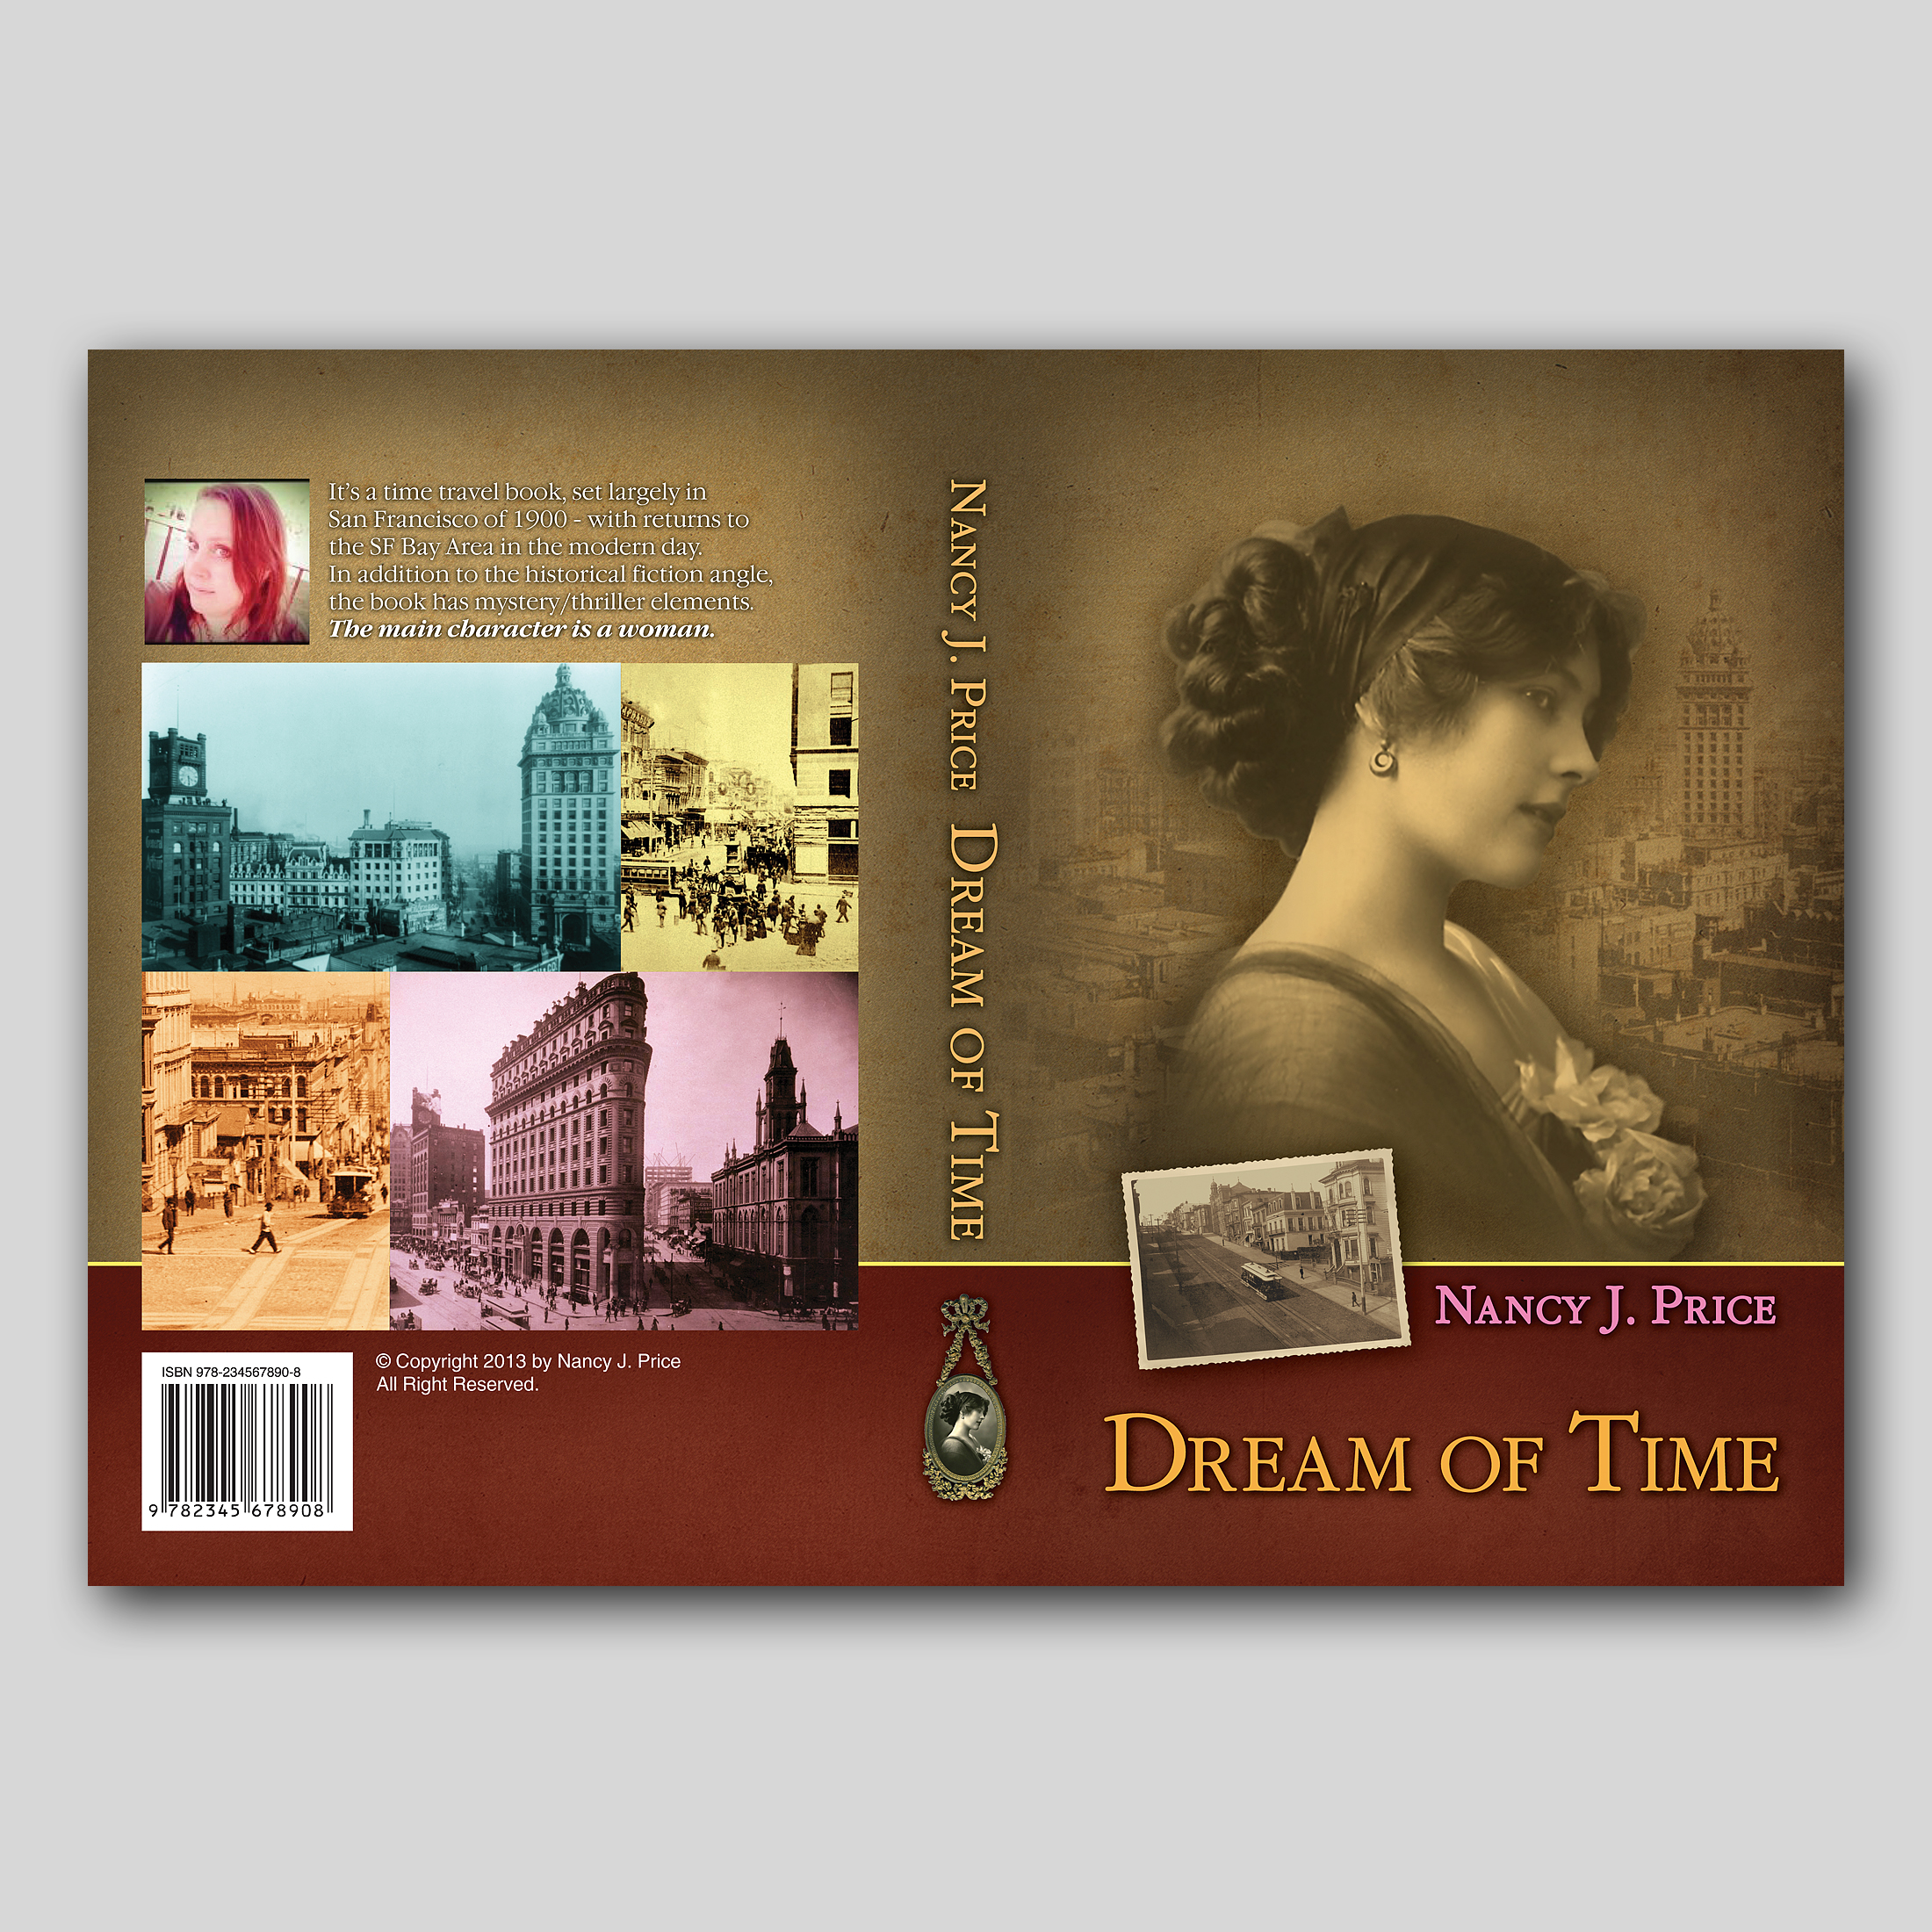 Book Cover Design by sokol25 - Entry No. 38 in the Book Cover Design Contest Fun Book Cover Design for Dream of Time.